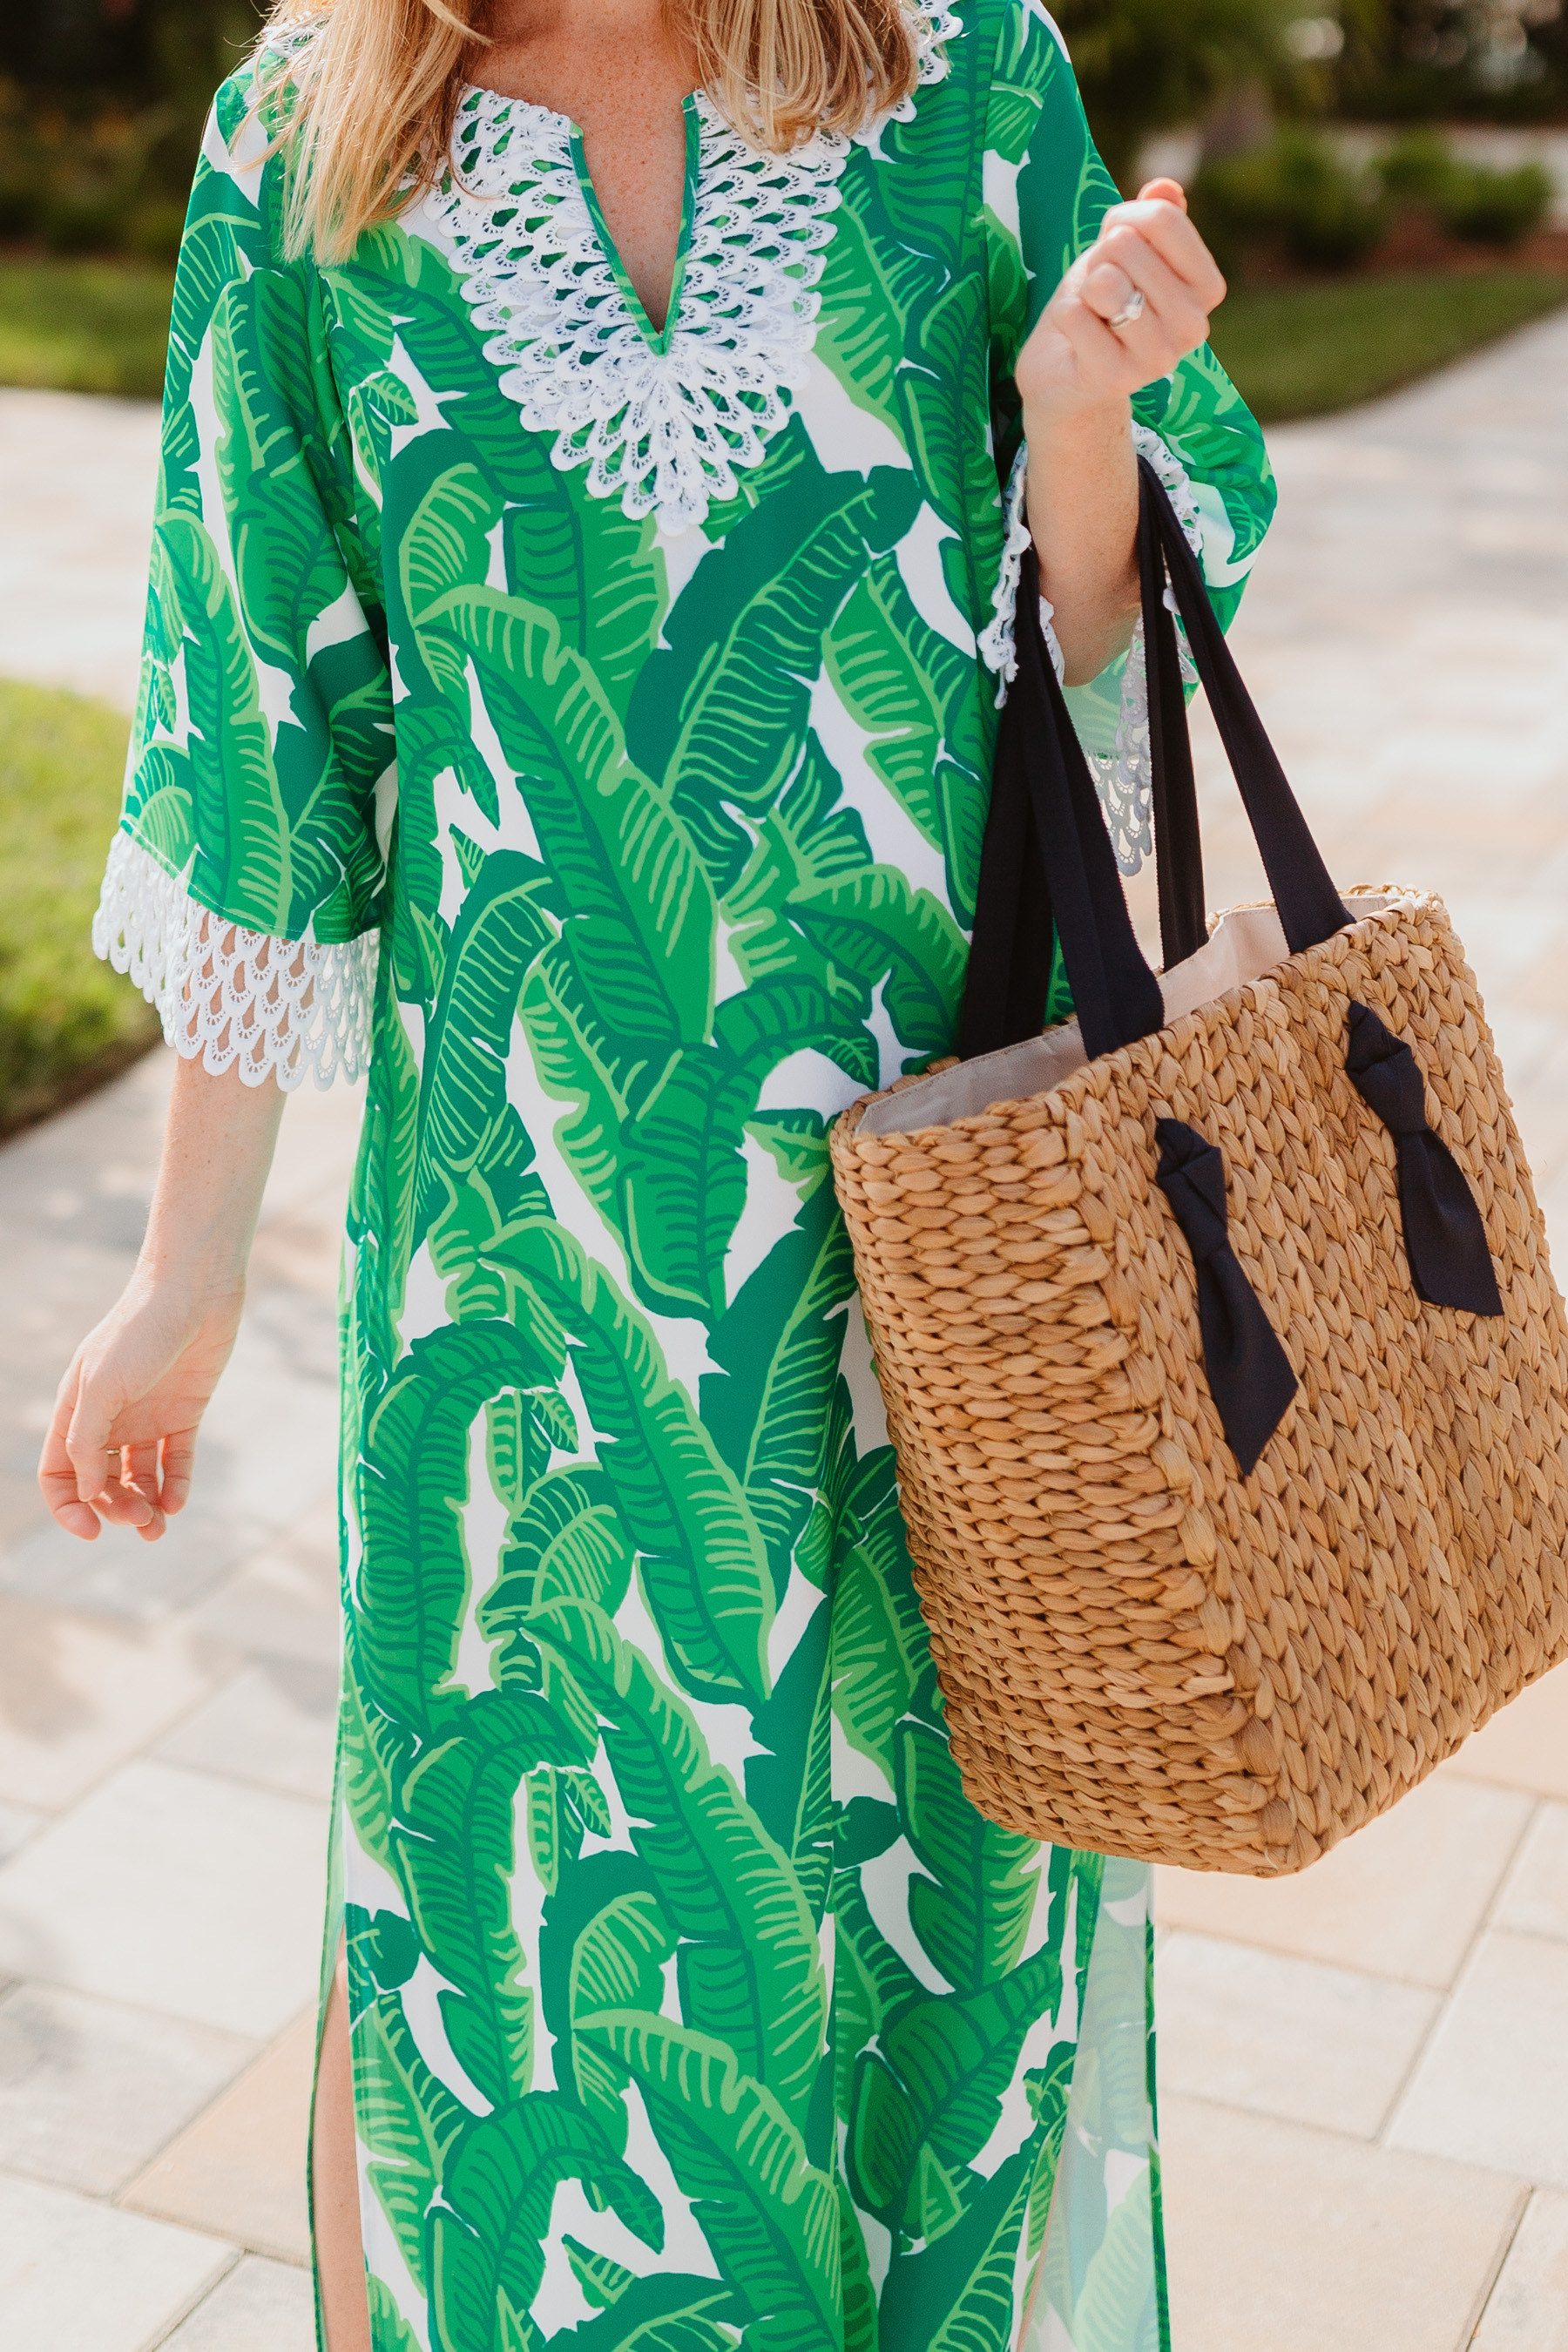 Kelly is wearing a Sail to Sable Banana Leaf Palm Dress / Pamela Munson Woven Tote